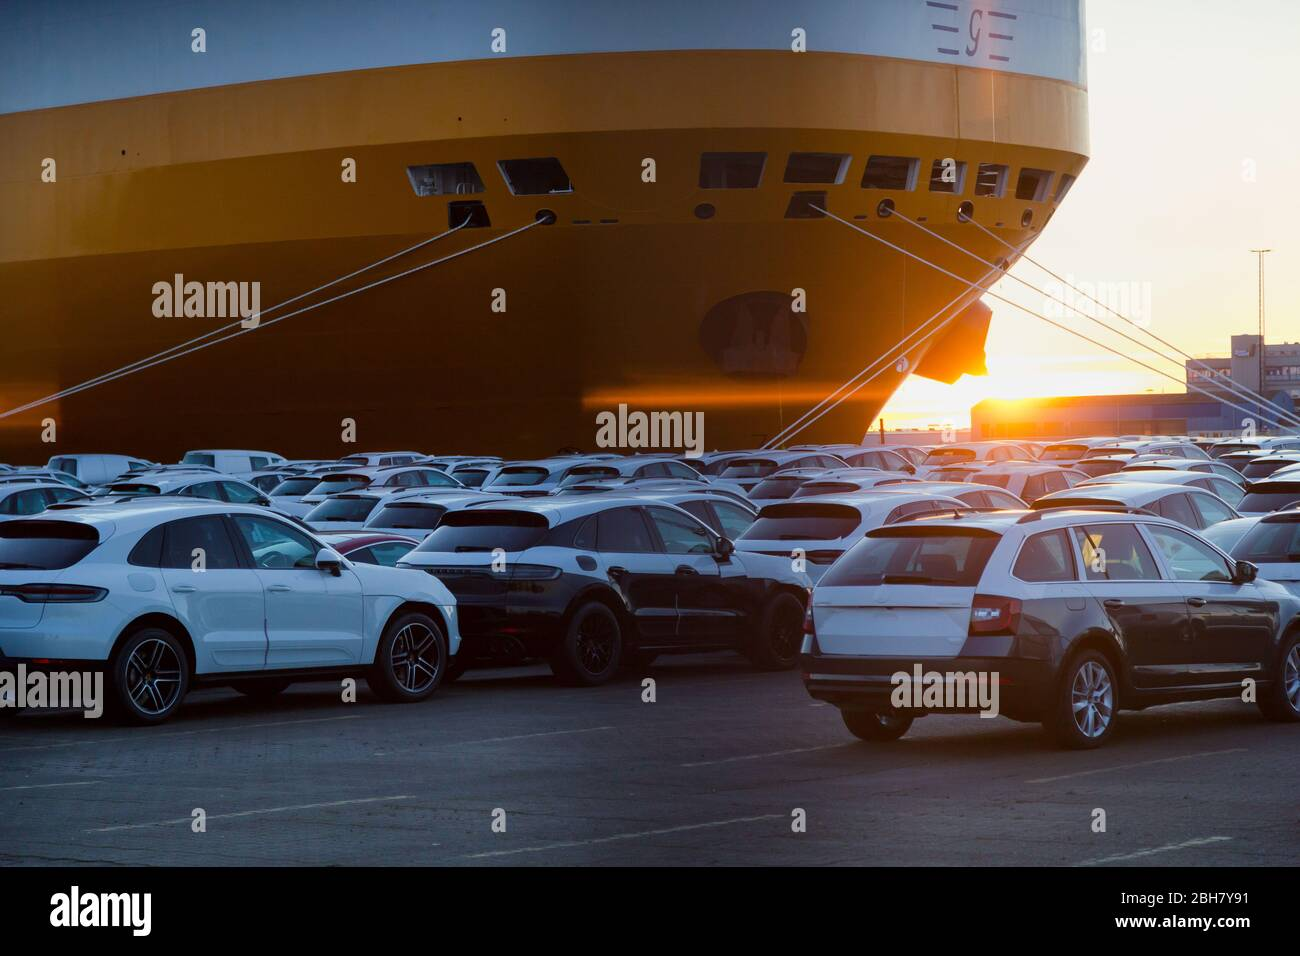 22.03.2020, Bremerhaven, Bremen, Germany - New cars are waiting for shipment on the BLG premises, in the picture carfeeder from Grimaldi Lines. 00A200 Stock Photo